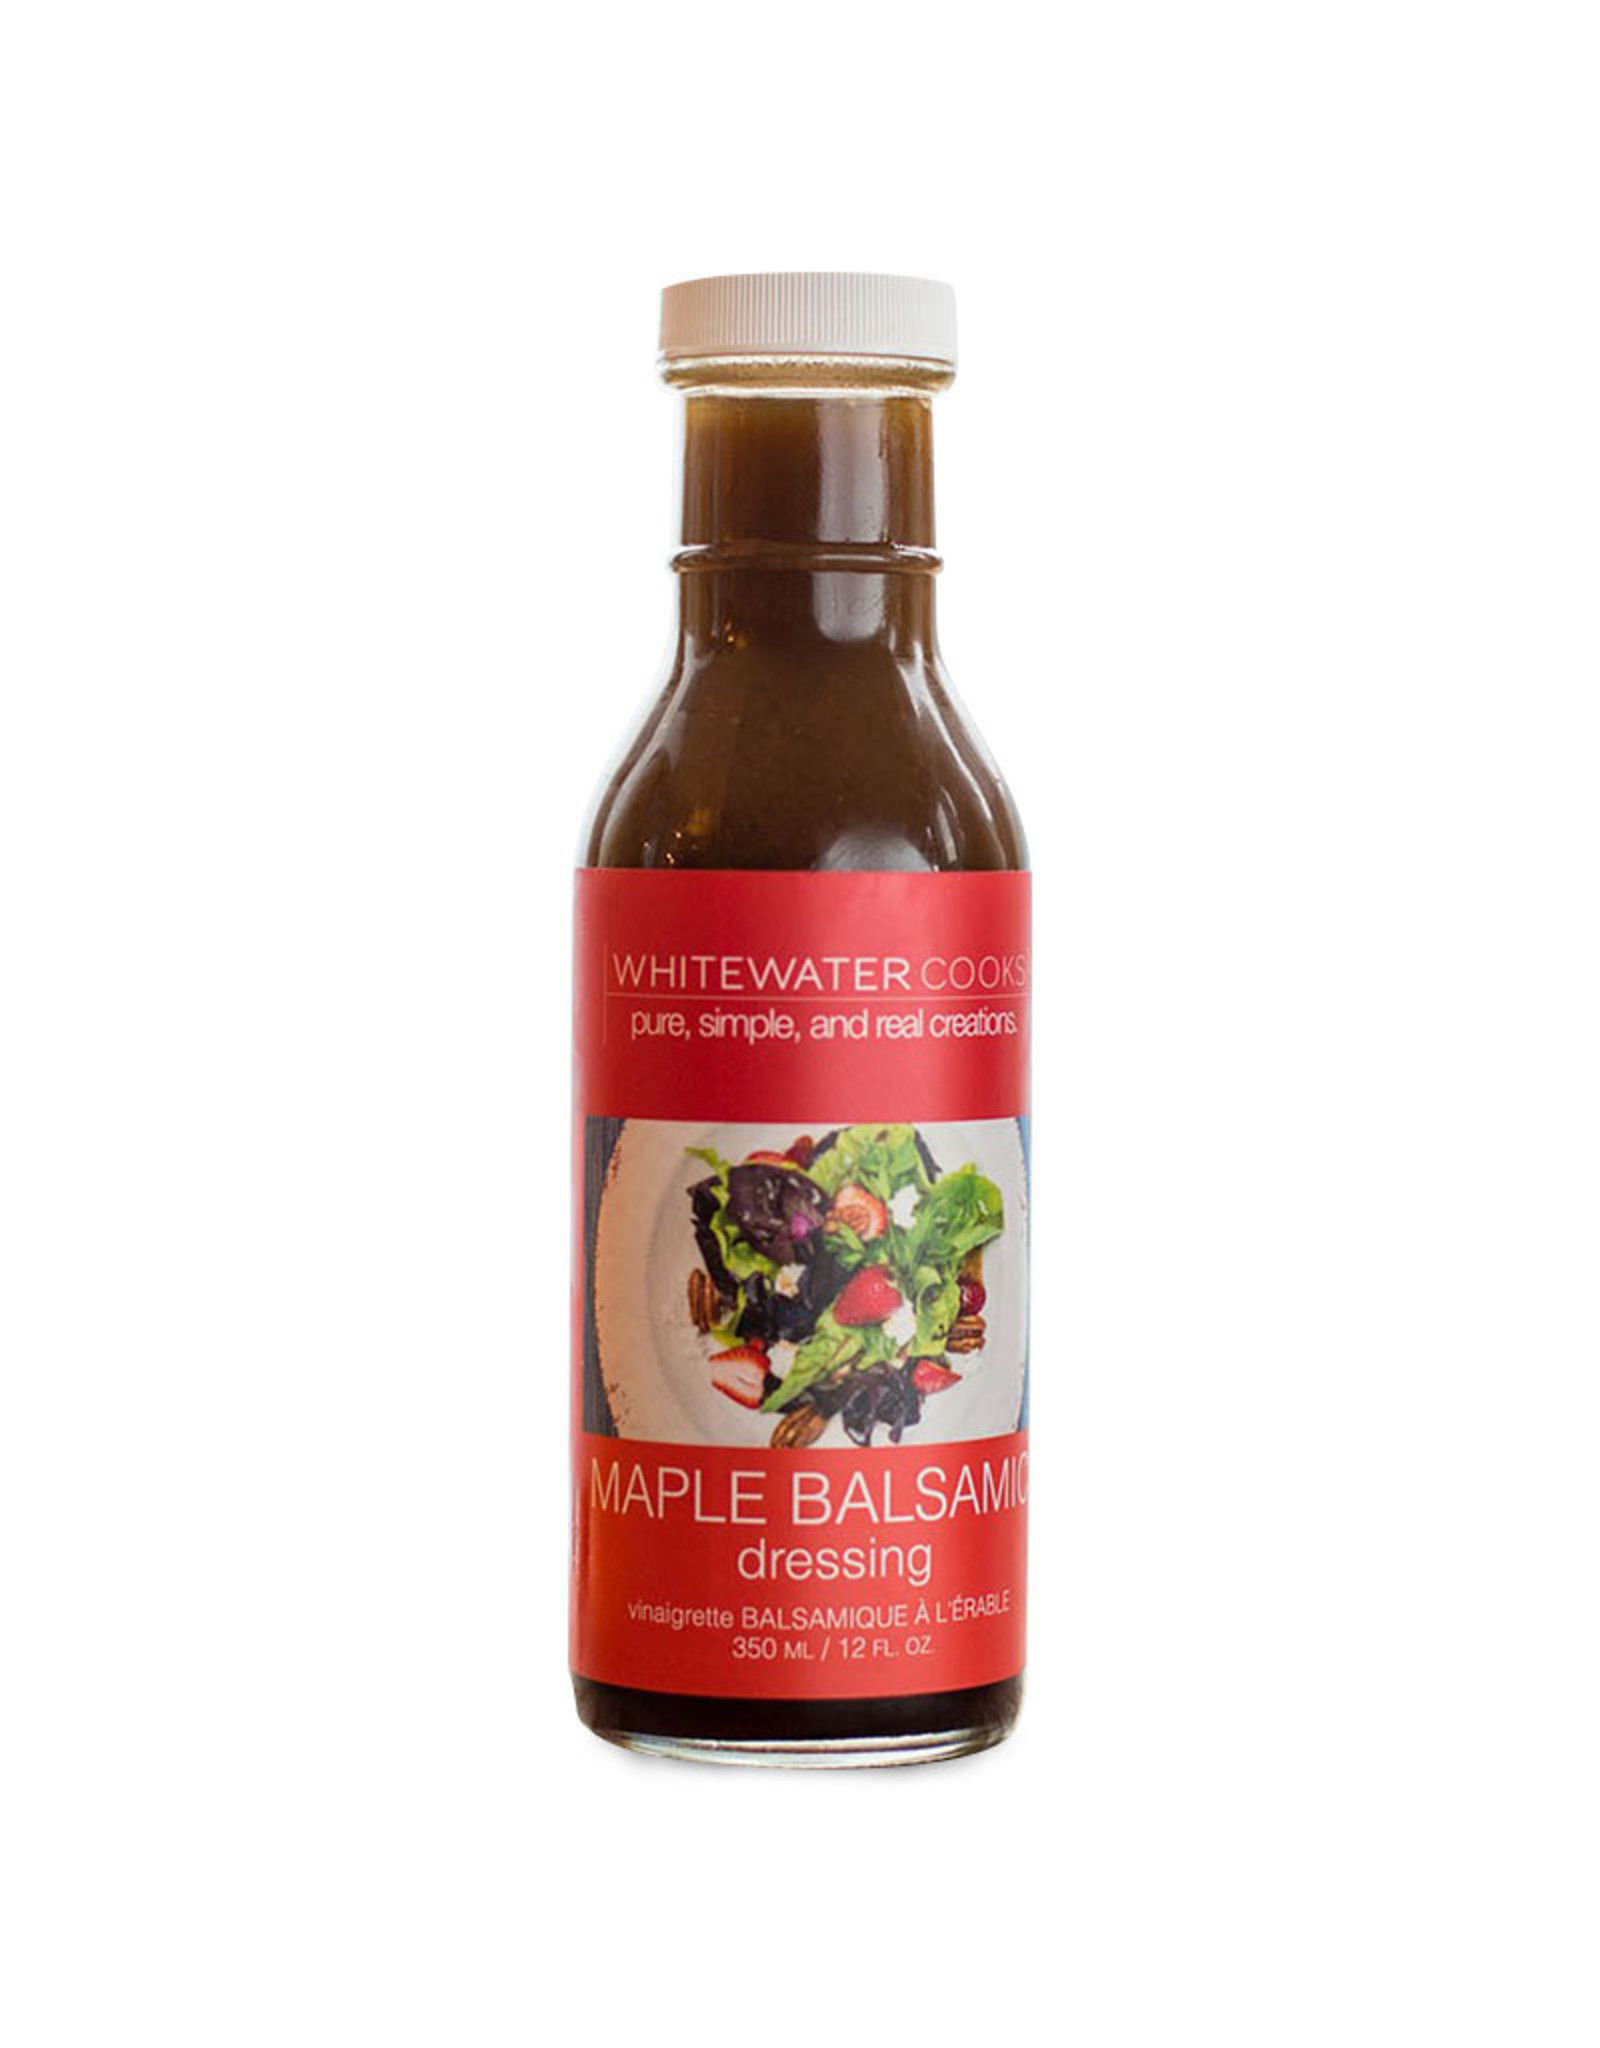 Whitewater Cooks Whitewater Cooks - Dressing, Maple Balsamic (350ml)